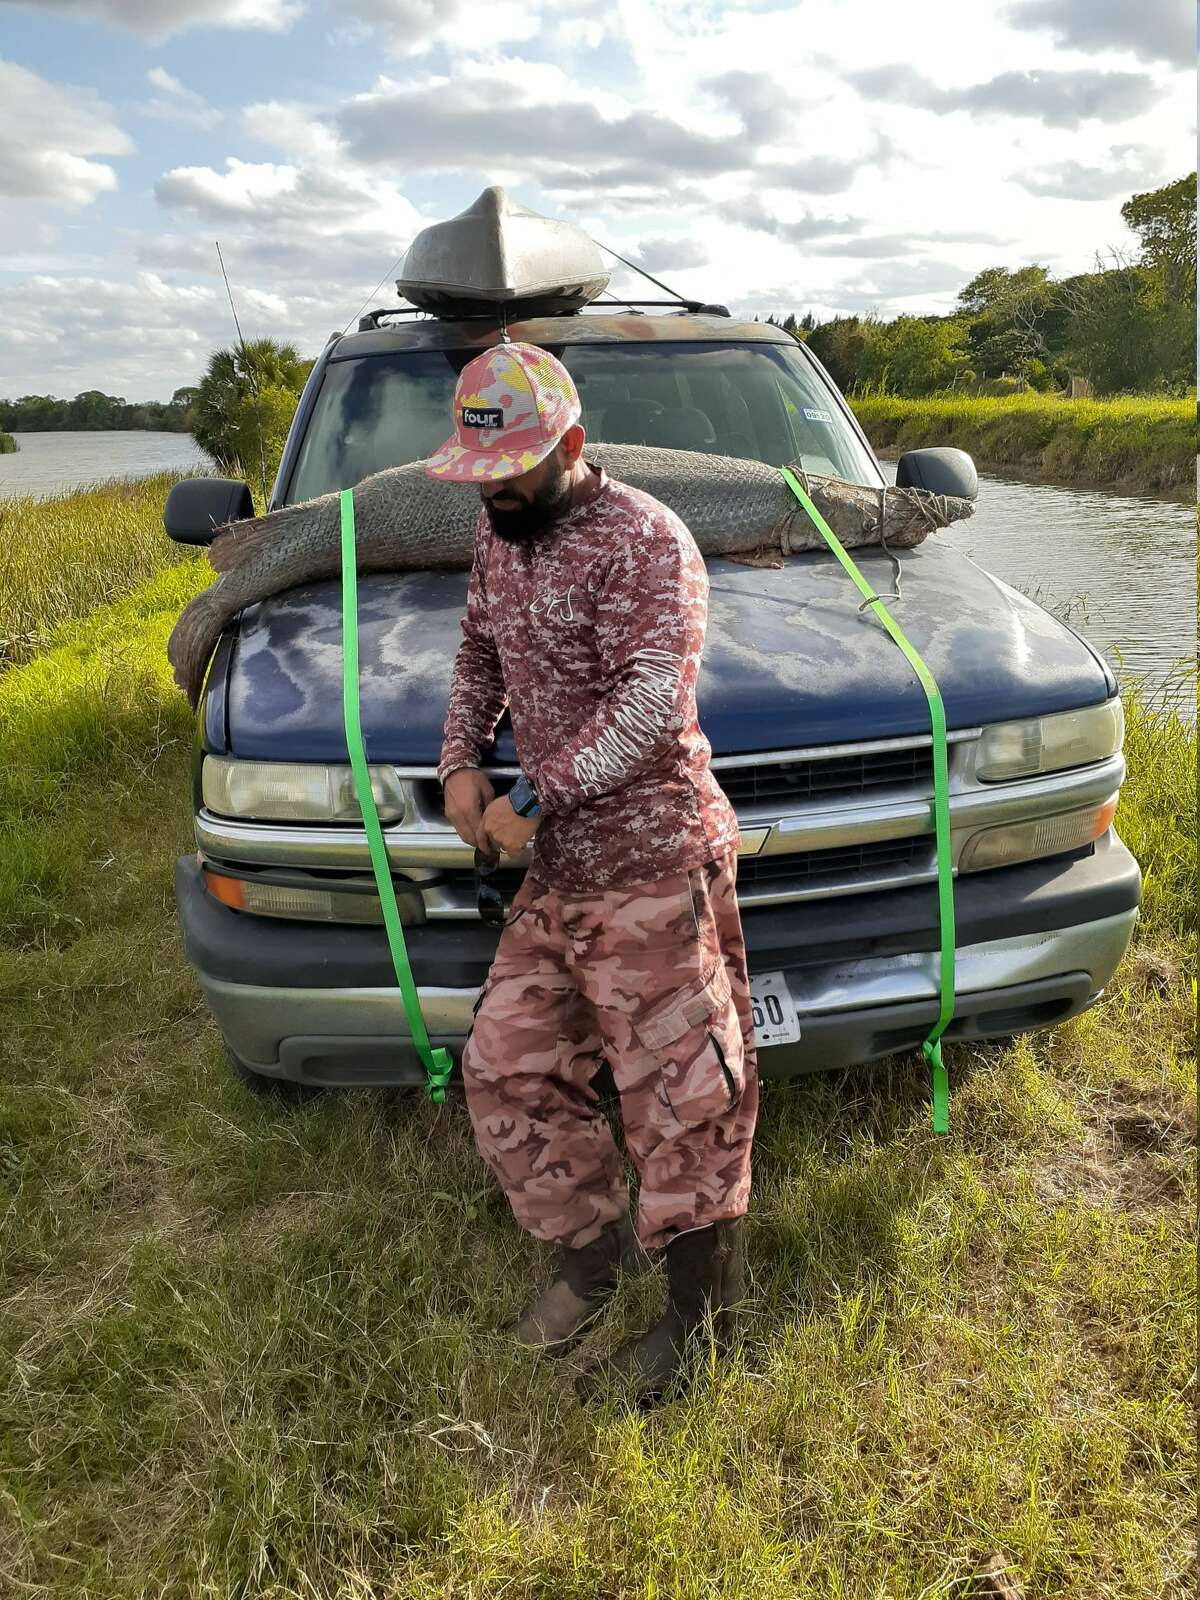 Chris Hernandez of San Benito, Texas came out victorious and reeled in a 7-foot, 200-pound alligator gar after a 40-minute fight while he was out fishing on his kayak earlier this week.